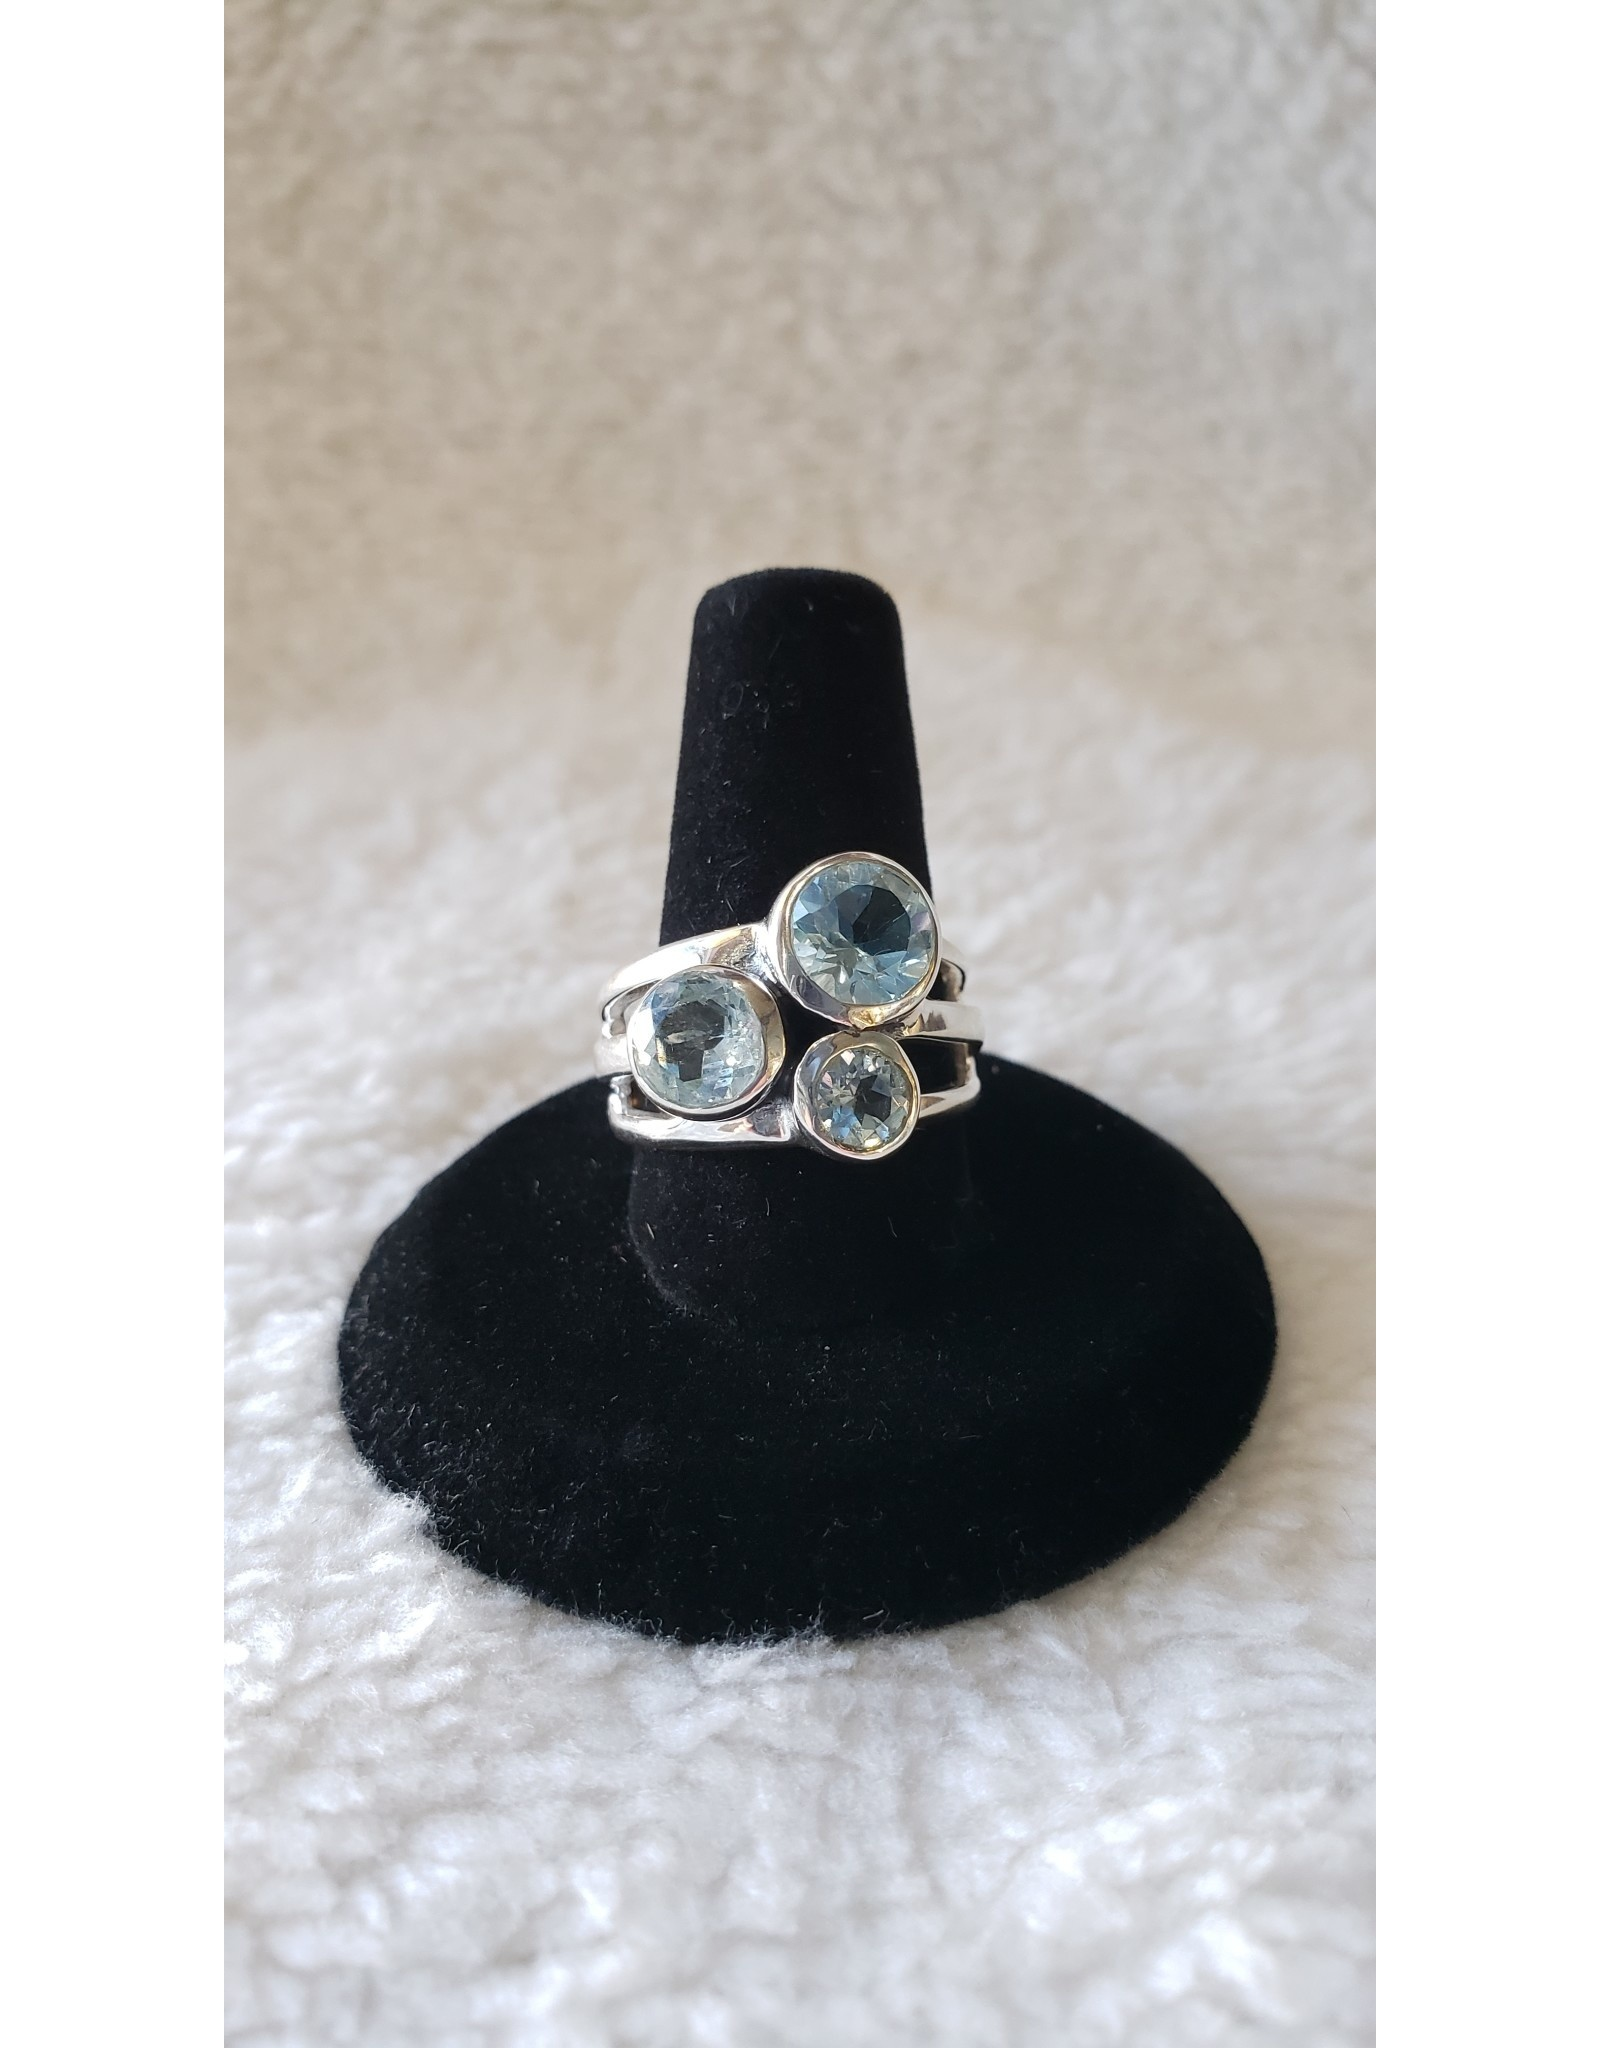 Blue Topaz Sterling Silver Ring - Size 7